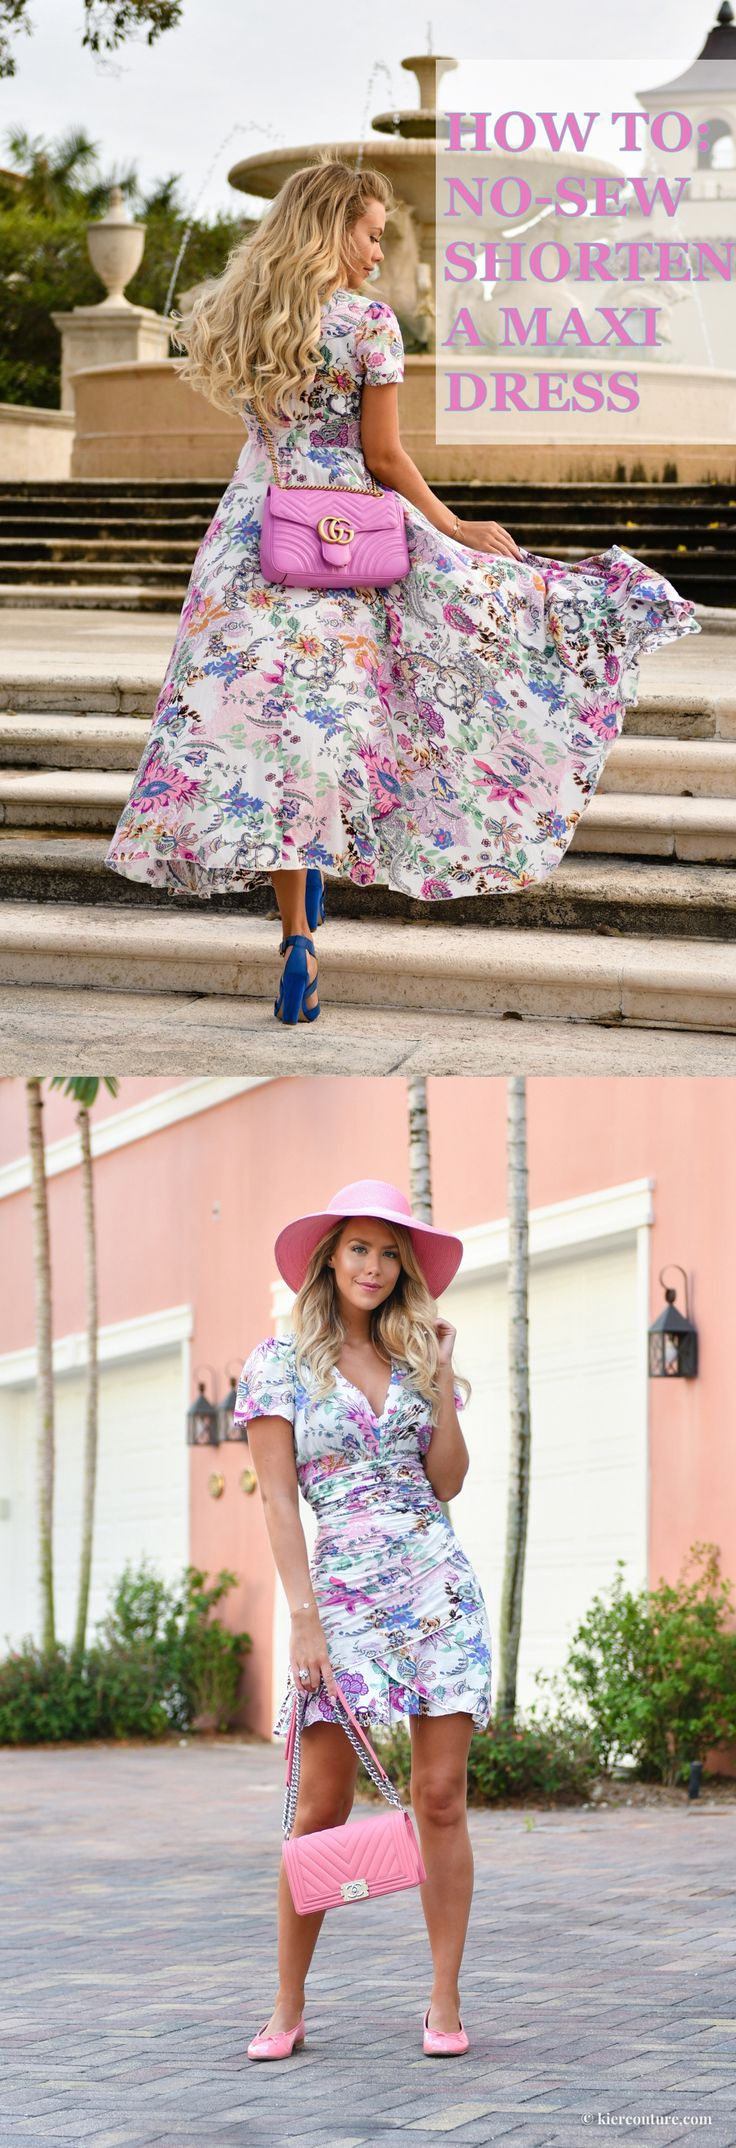 HOW TO NO SEW SHORTEN A MAXI DRESS: Kier Mellour in a floral DIY No-sew dress with pink chanel chevron boy bag and pink patent leather chanel flats with Eric Javitz hat